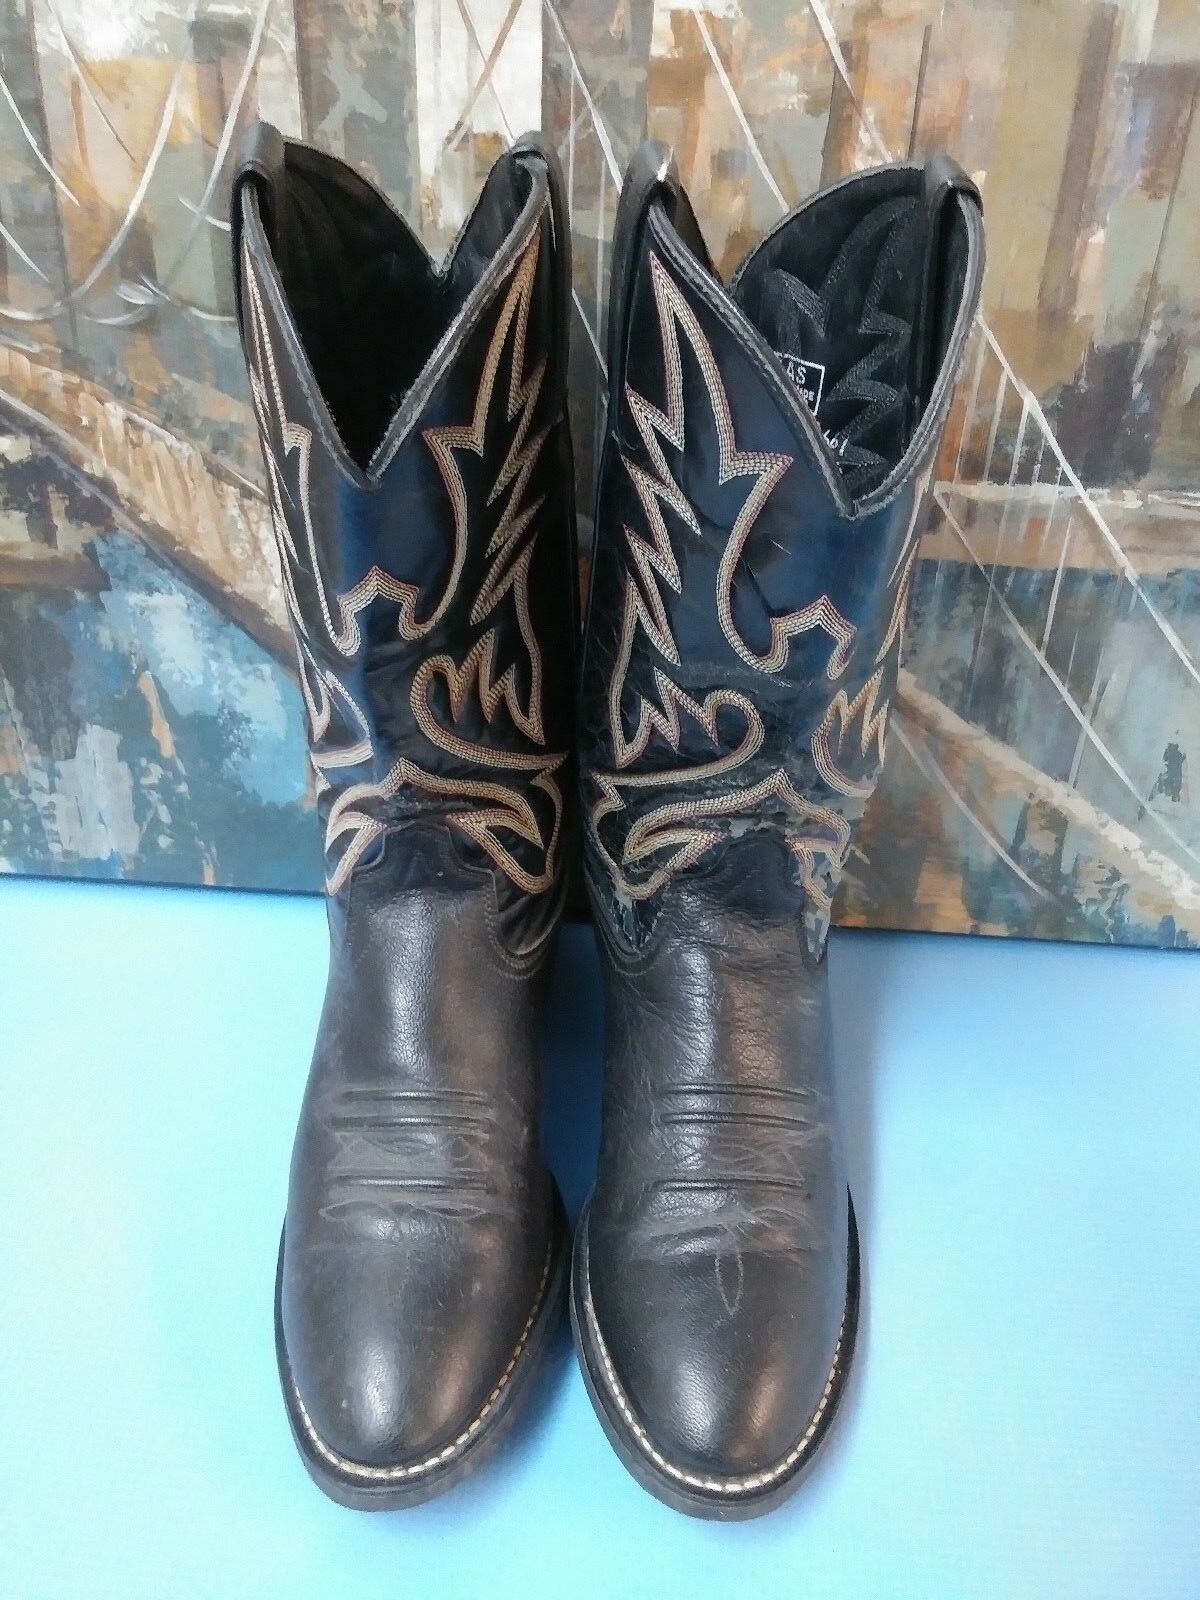 Texas Leather Boots Cowboy Boots Leather Size 9 D Style 5180 Texas USA  Black 0e1089